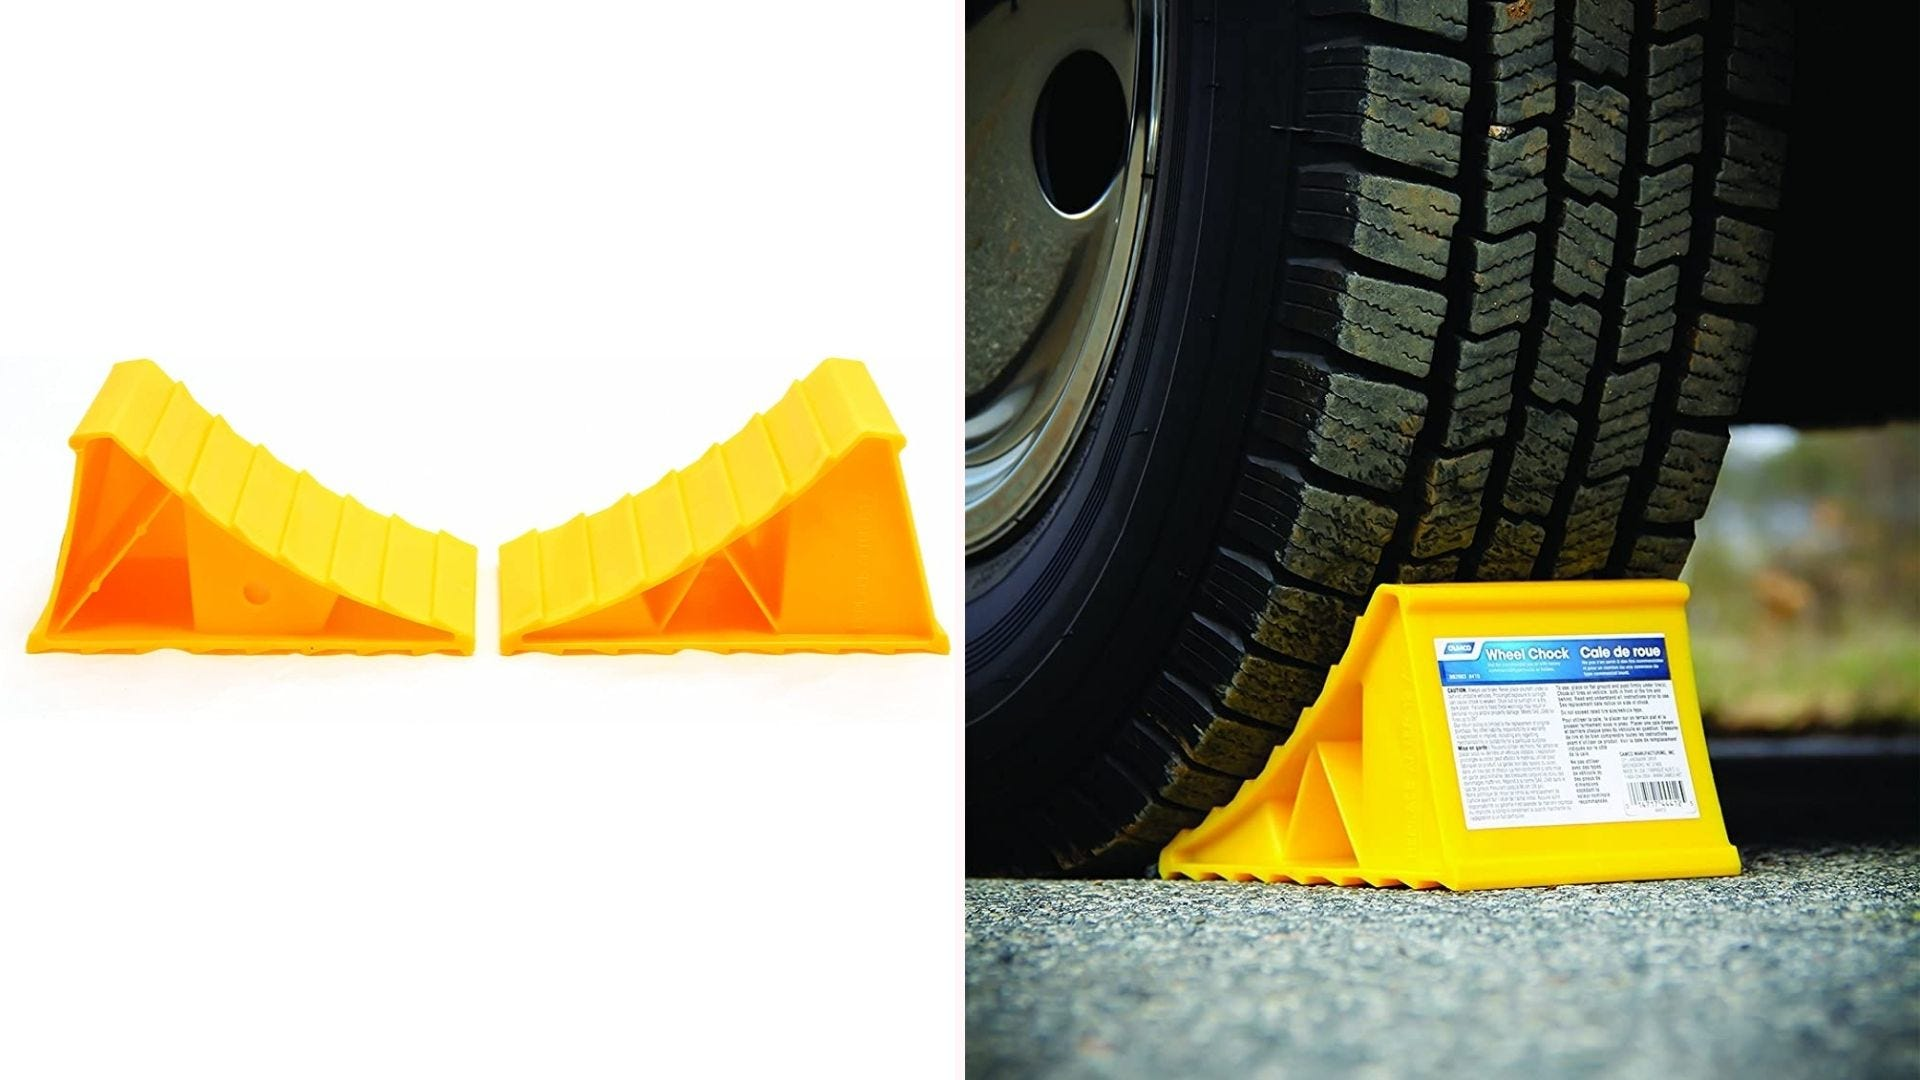 On the left, two bright yellow wheel chocks face each other. On the right, the wheel chock sits under the tire of a parked vehicle.